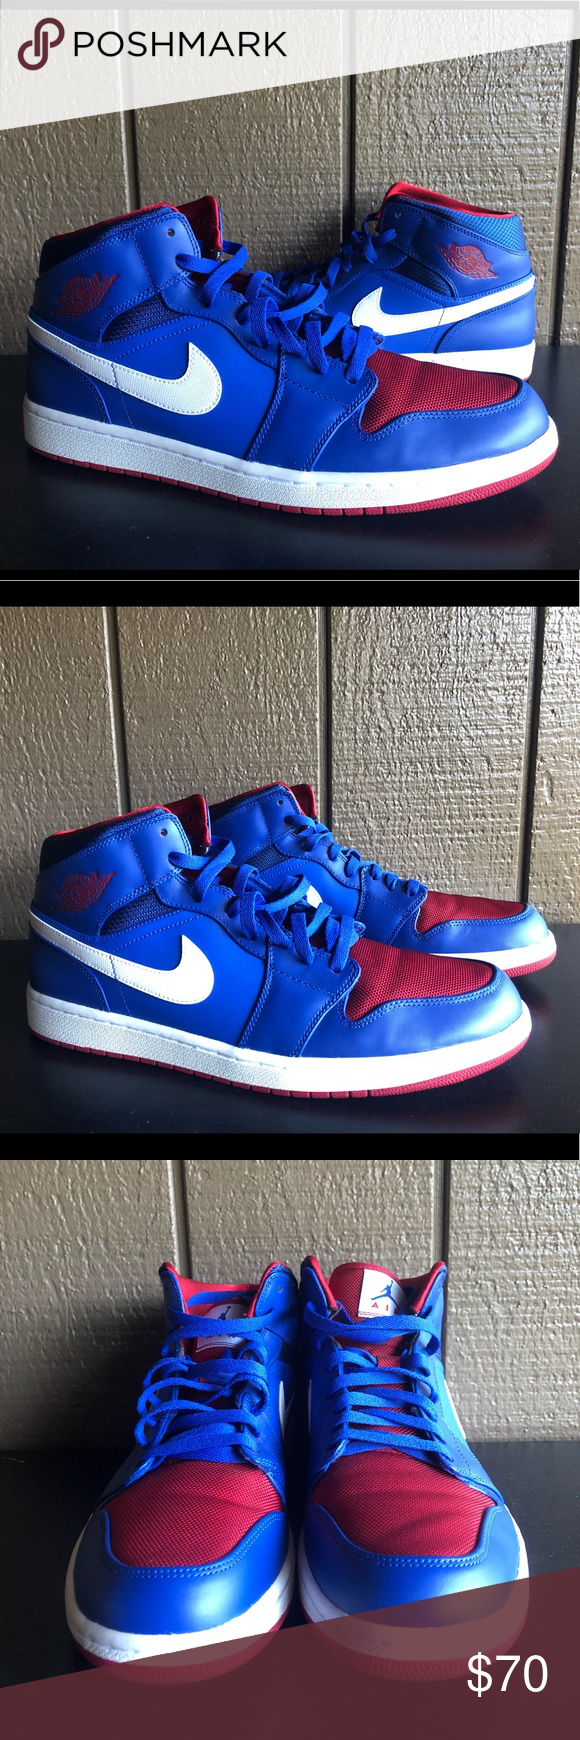 new york d4b51 90951 ... cheap air jordan 1 mid rivalry pack detroit pistons 12.5 nike air  jordan 1 retro mid